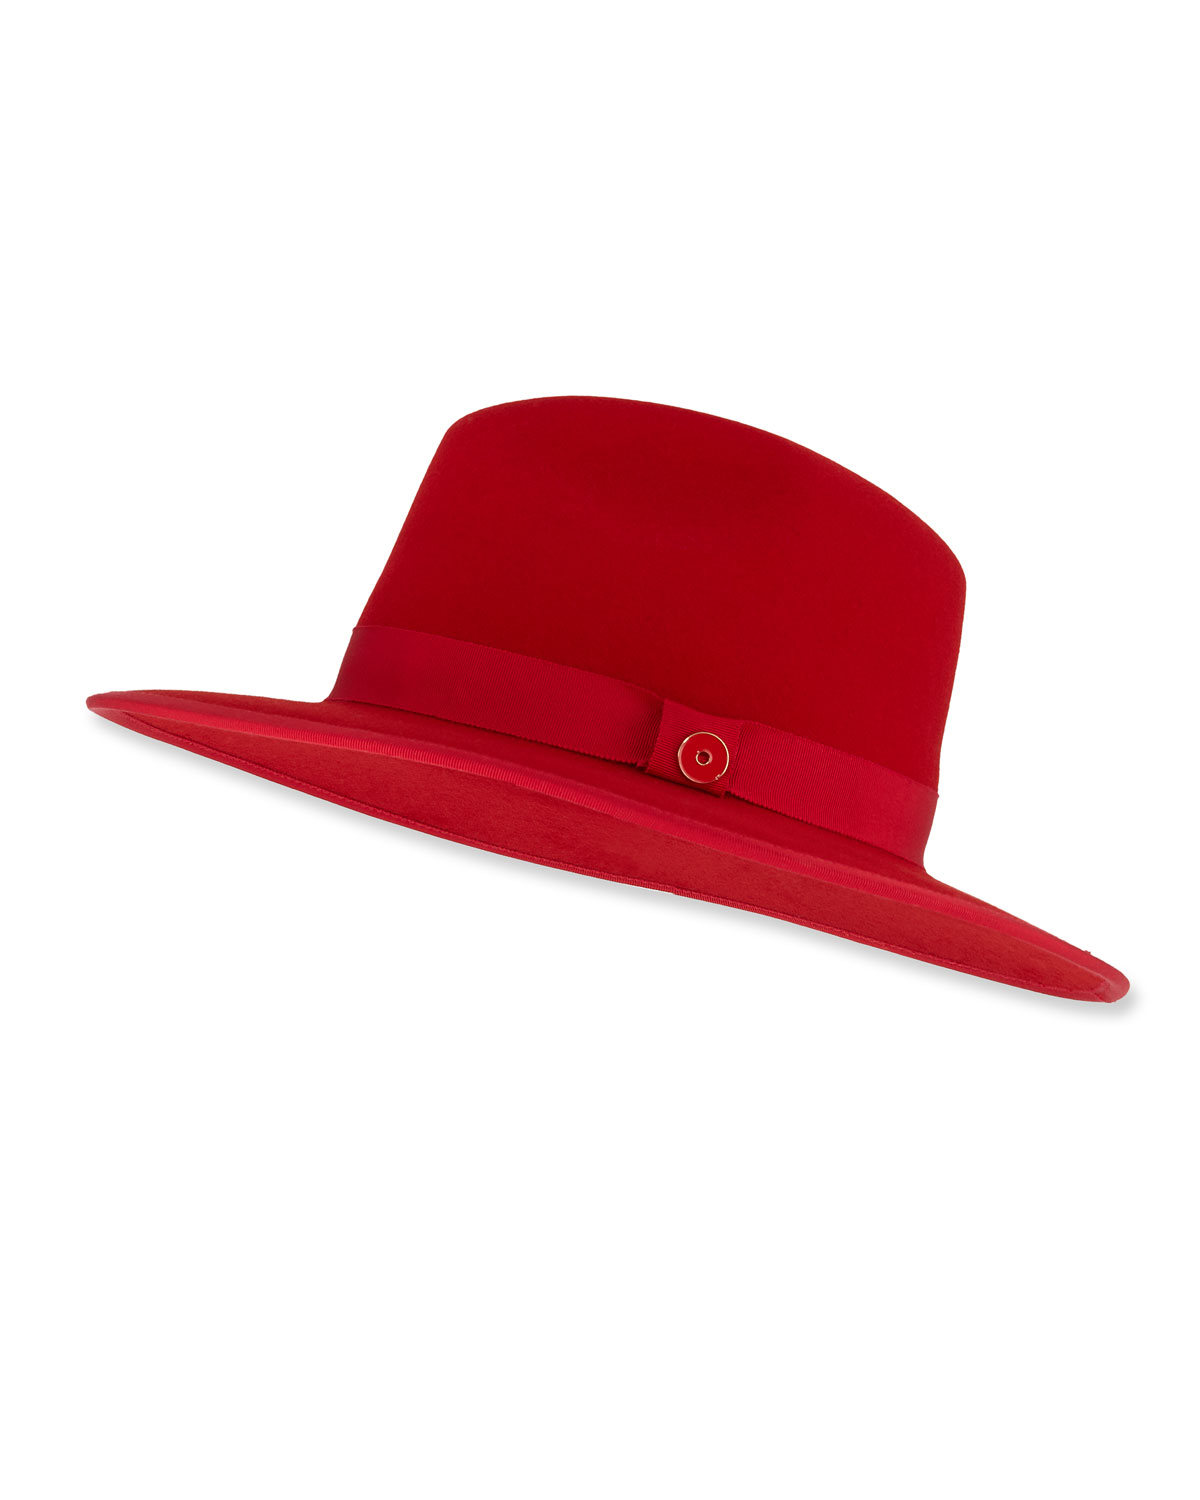 e18620c6a97af Buy keith and james hats for women - Best women s keith and james hats shop  - Cools.com